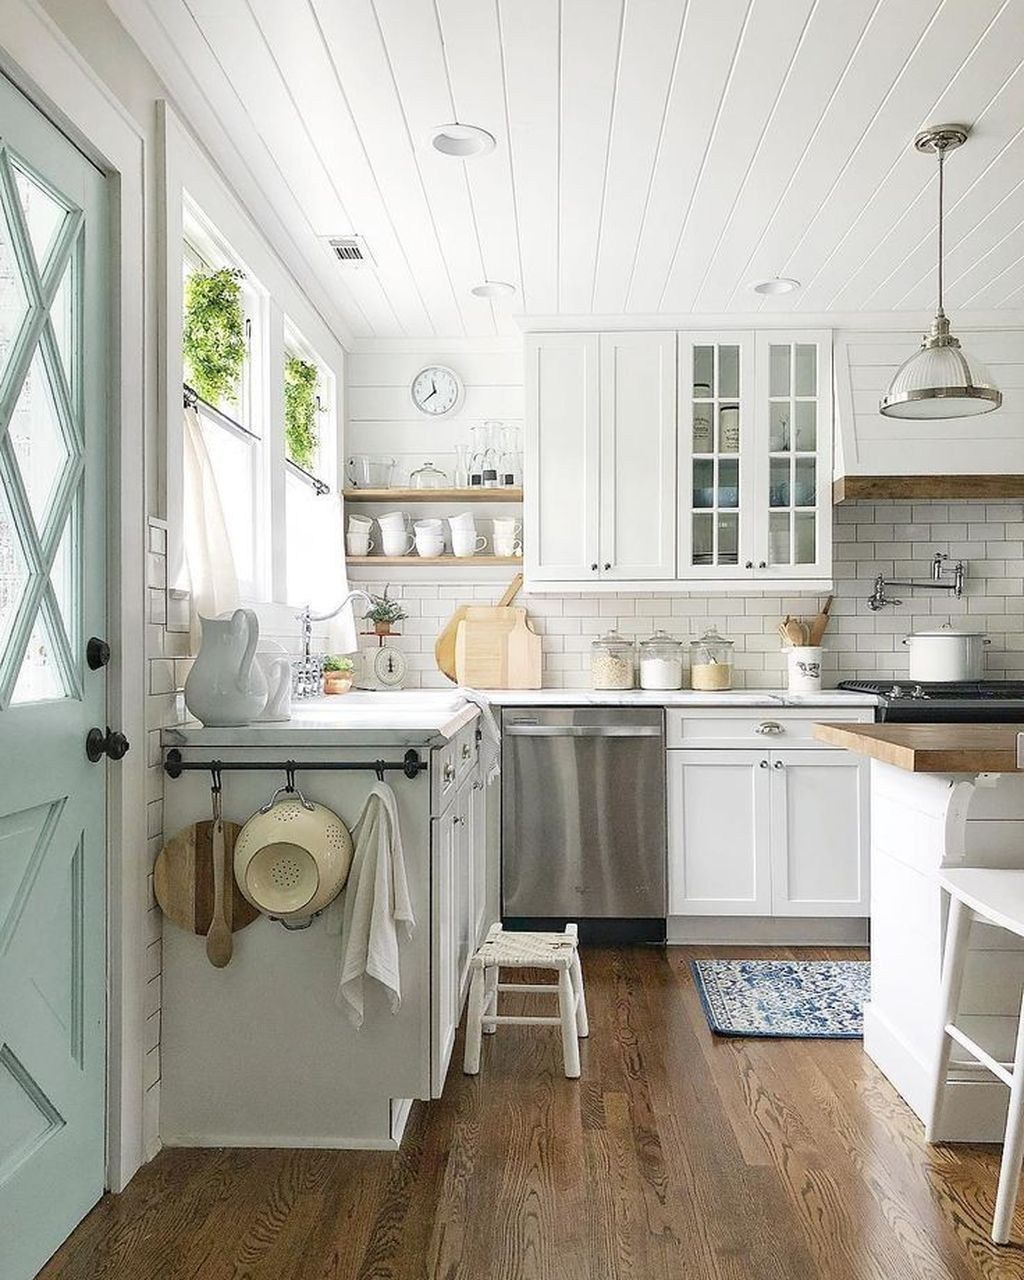 56 Awesome Farmhouse Style Kitchen Cabinet Design Ideas | Cabinet ...